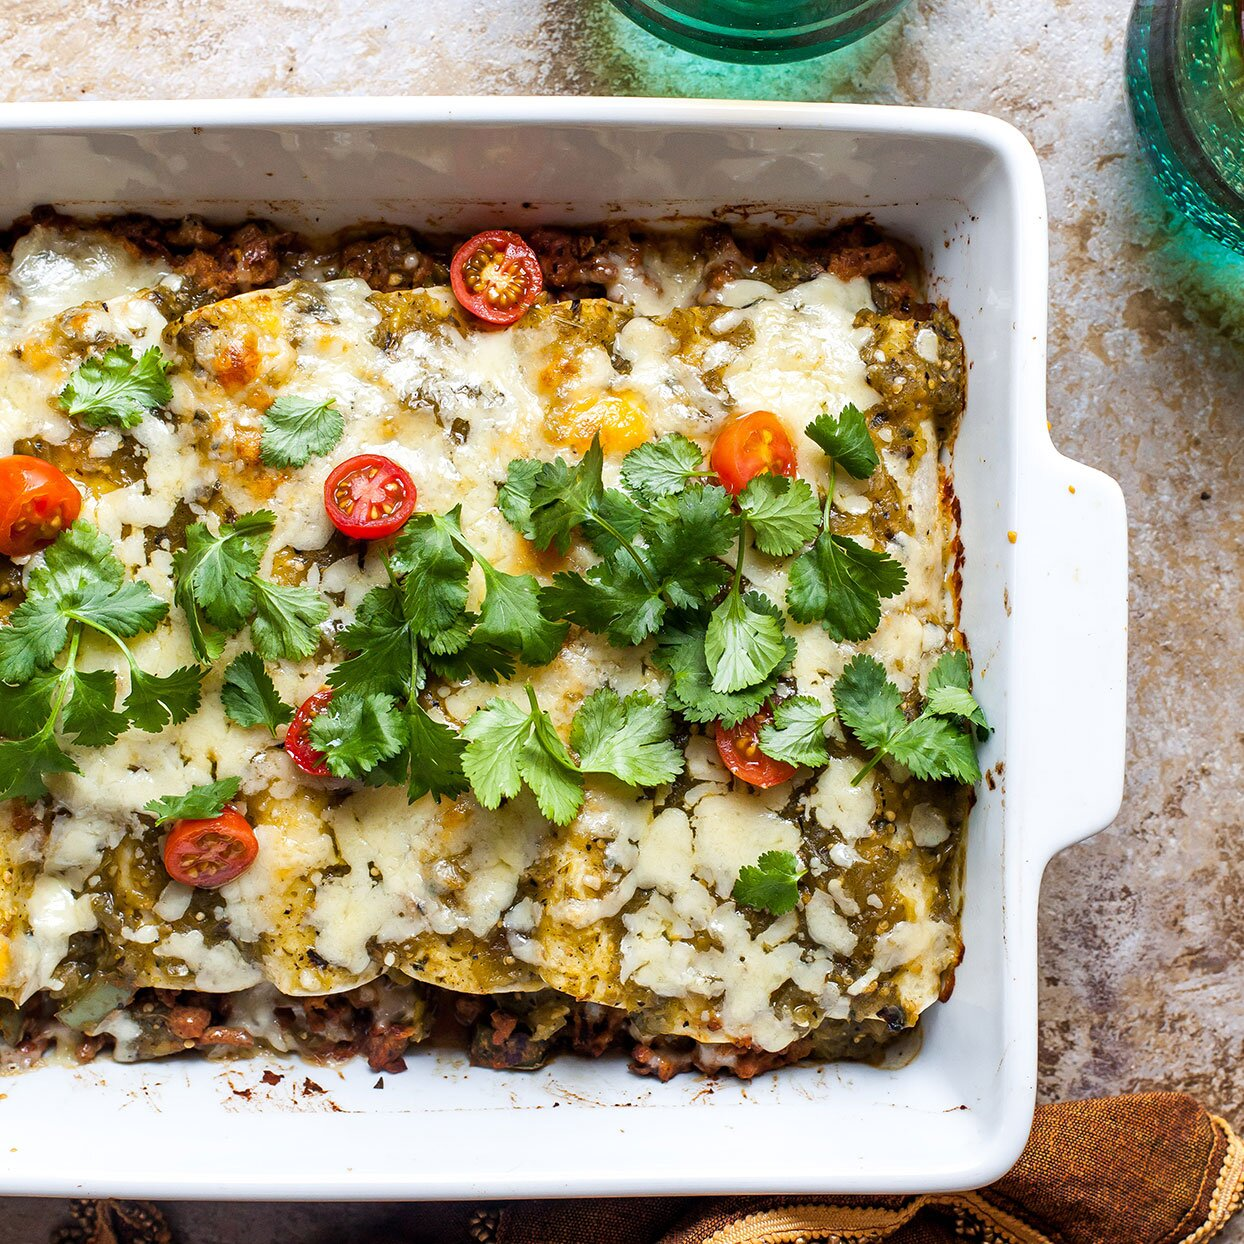 enchiladas in a white pan on a table